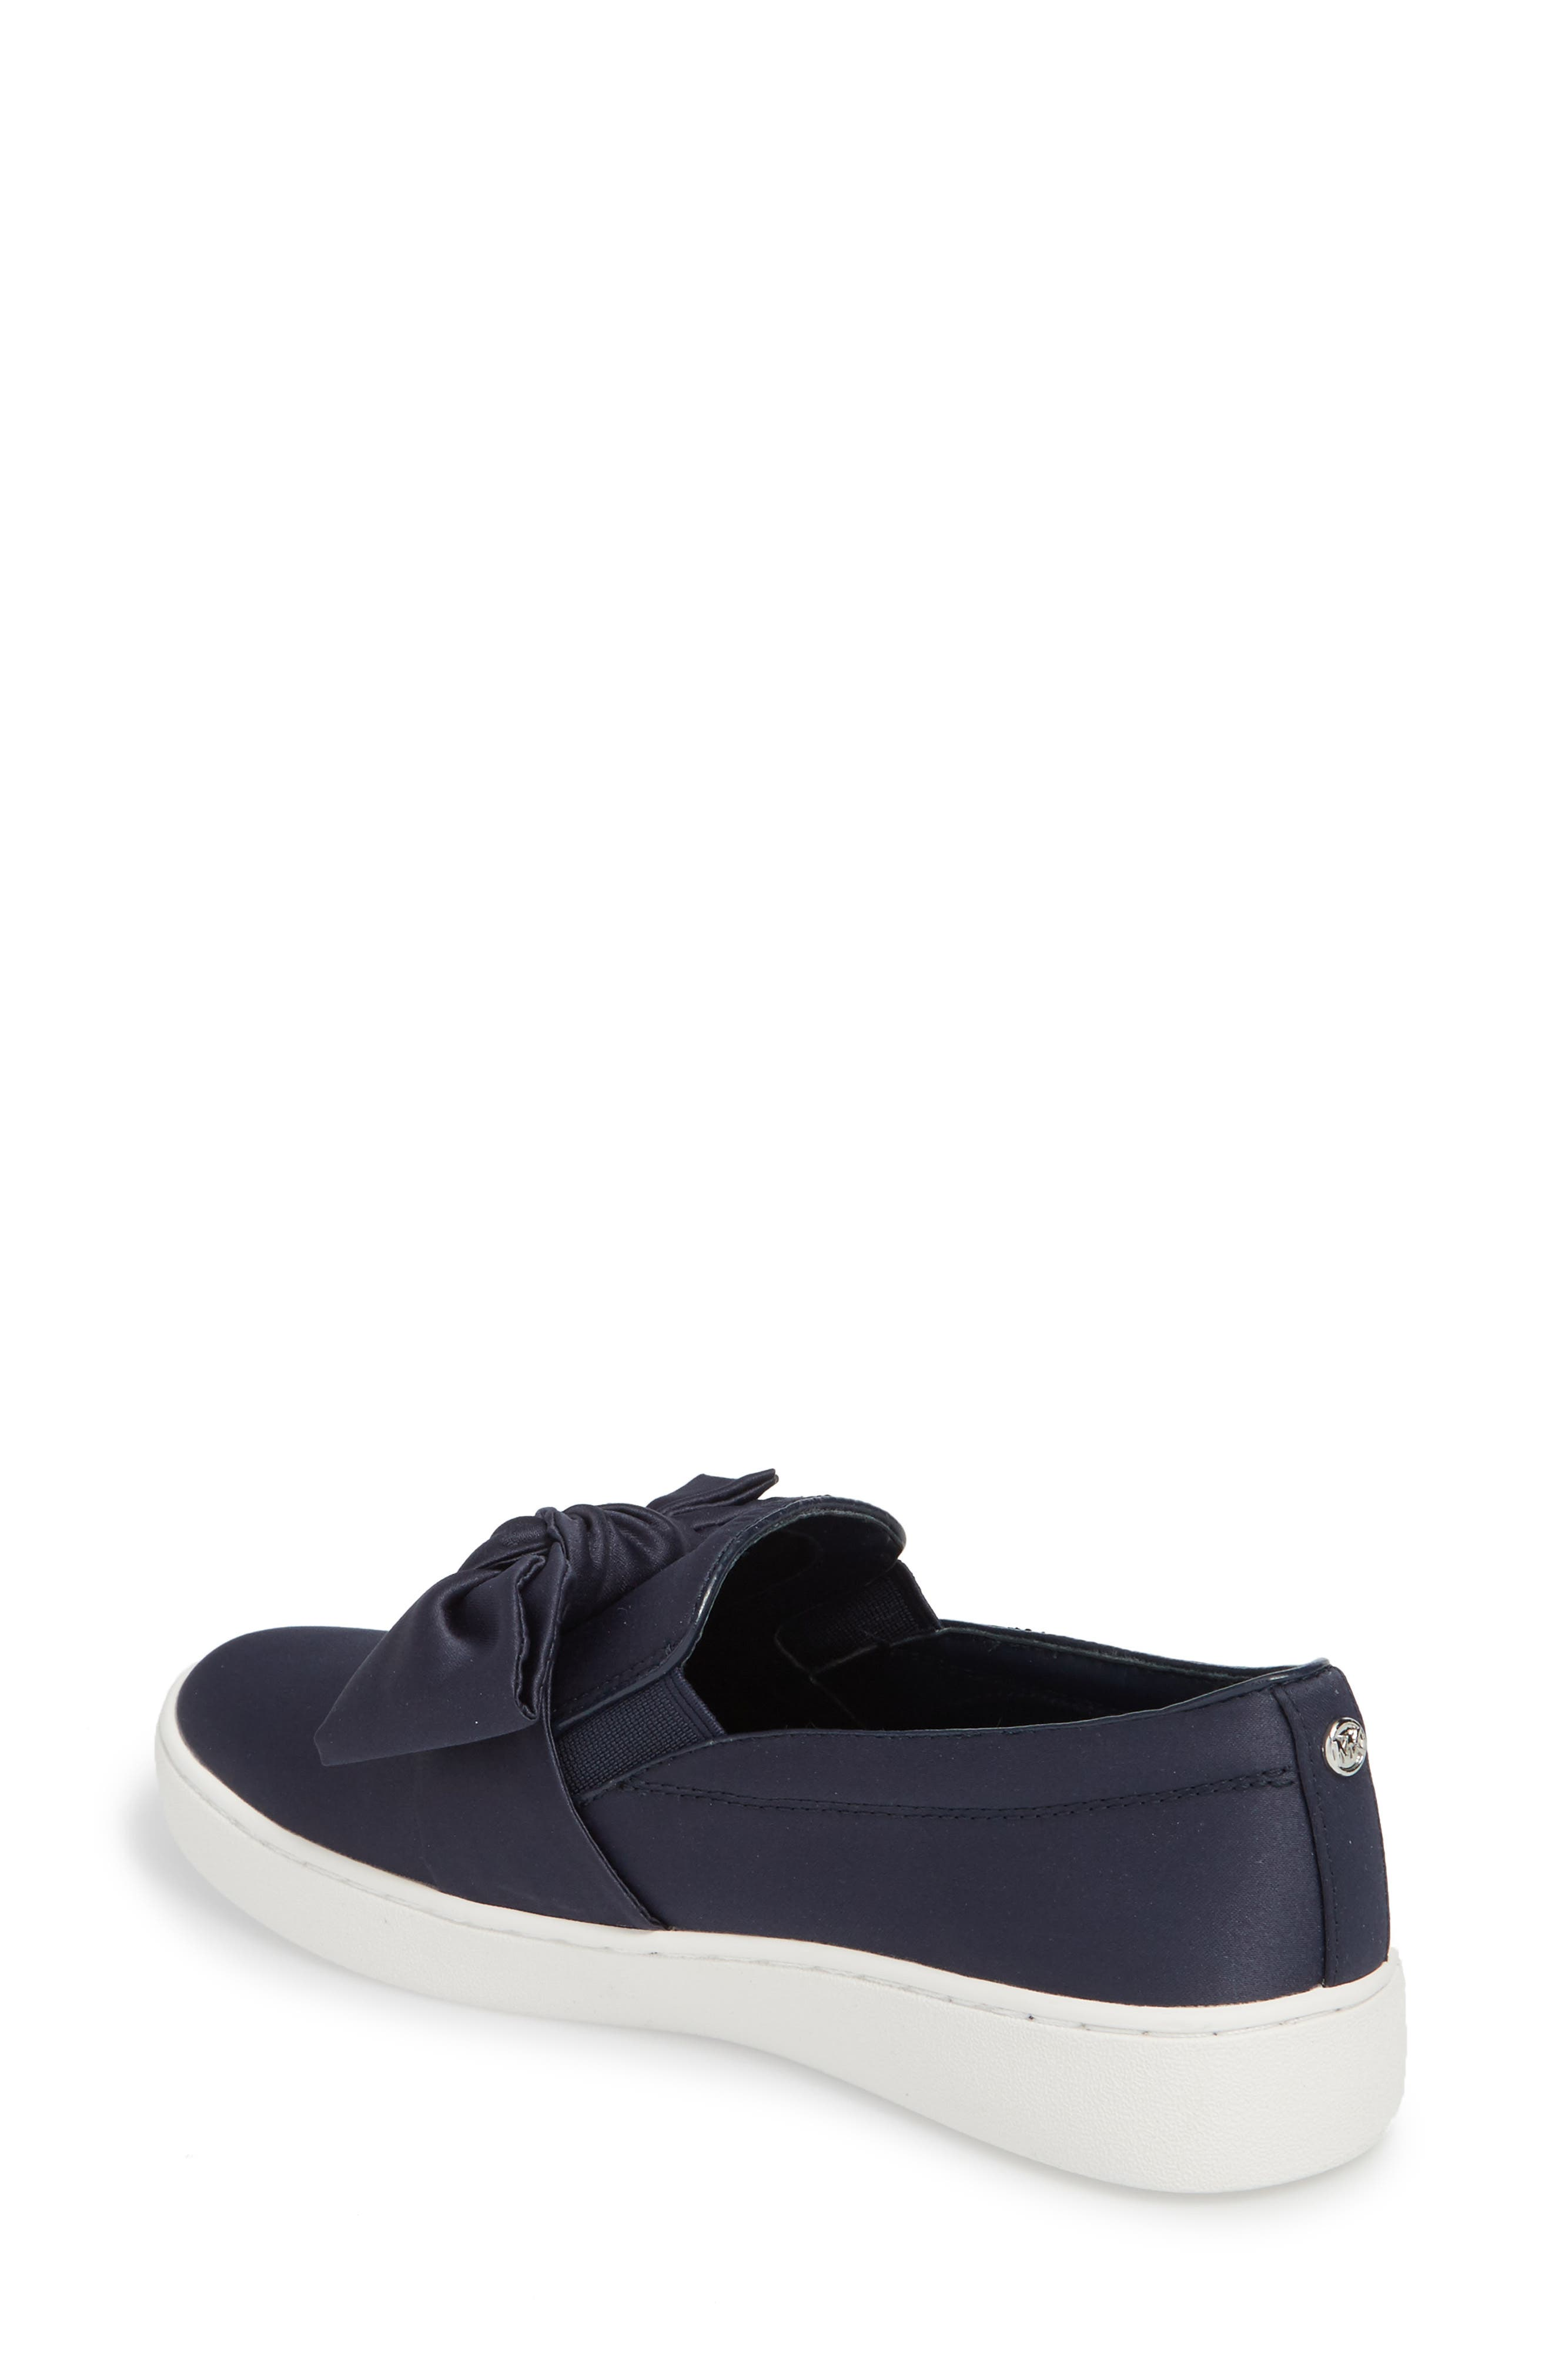 Willa Sneaker,                             Alternate thumbnail 2, color,                             Admiral Satin